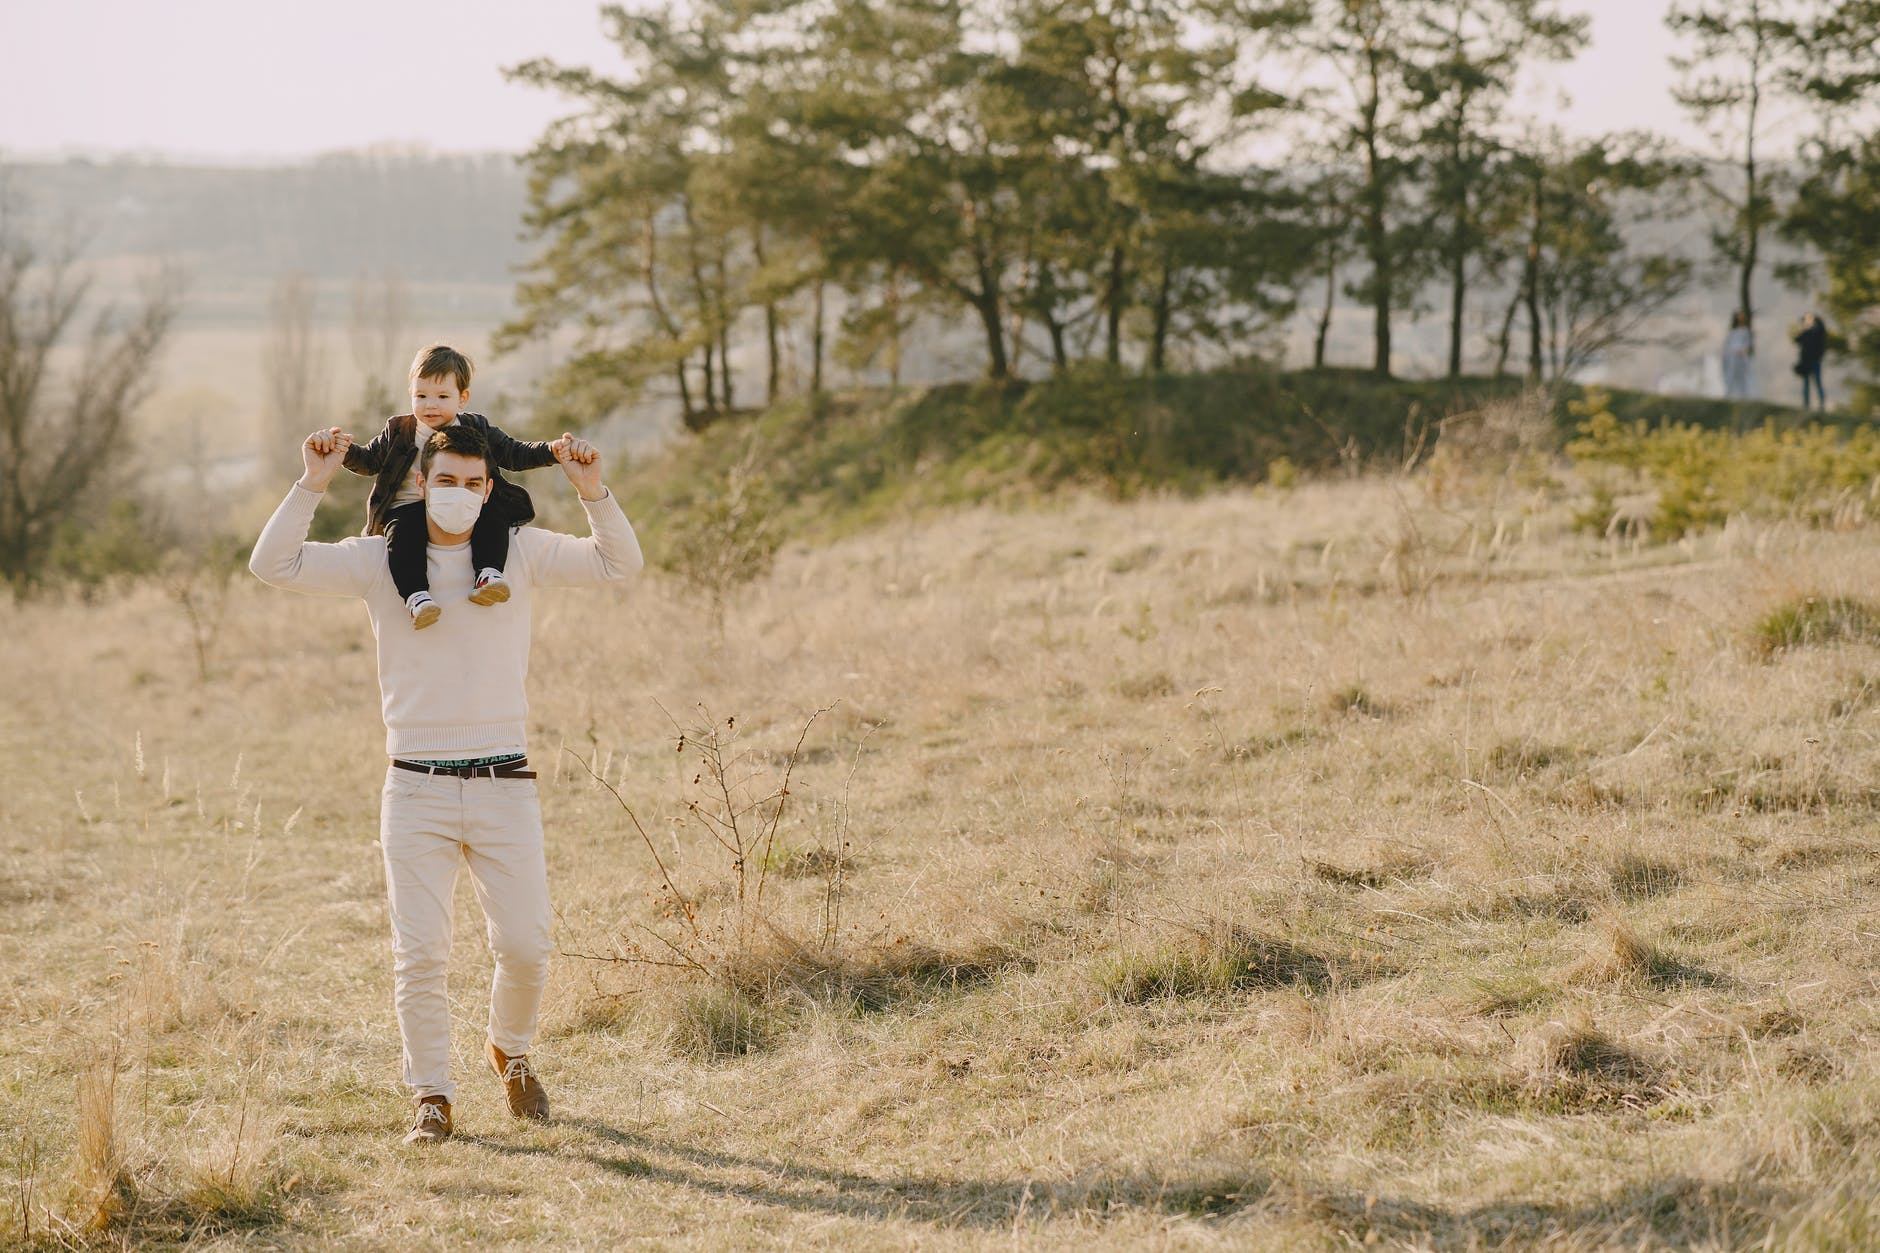 photo of man carrying his child on his back while standing on grass field